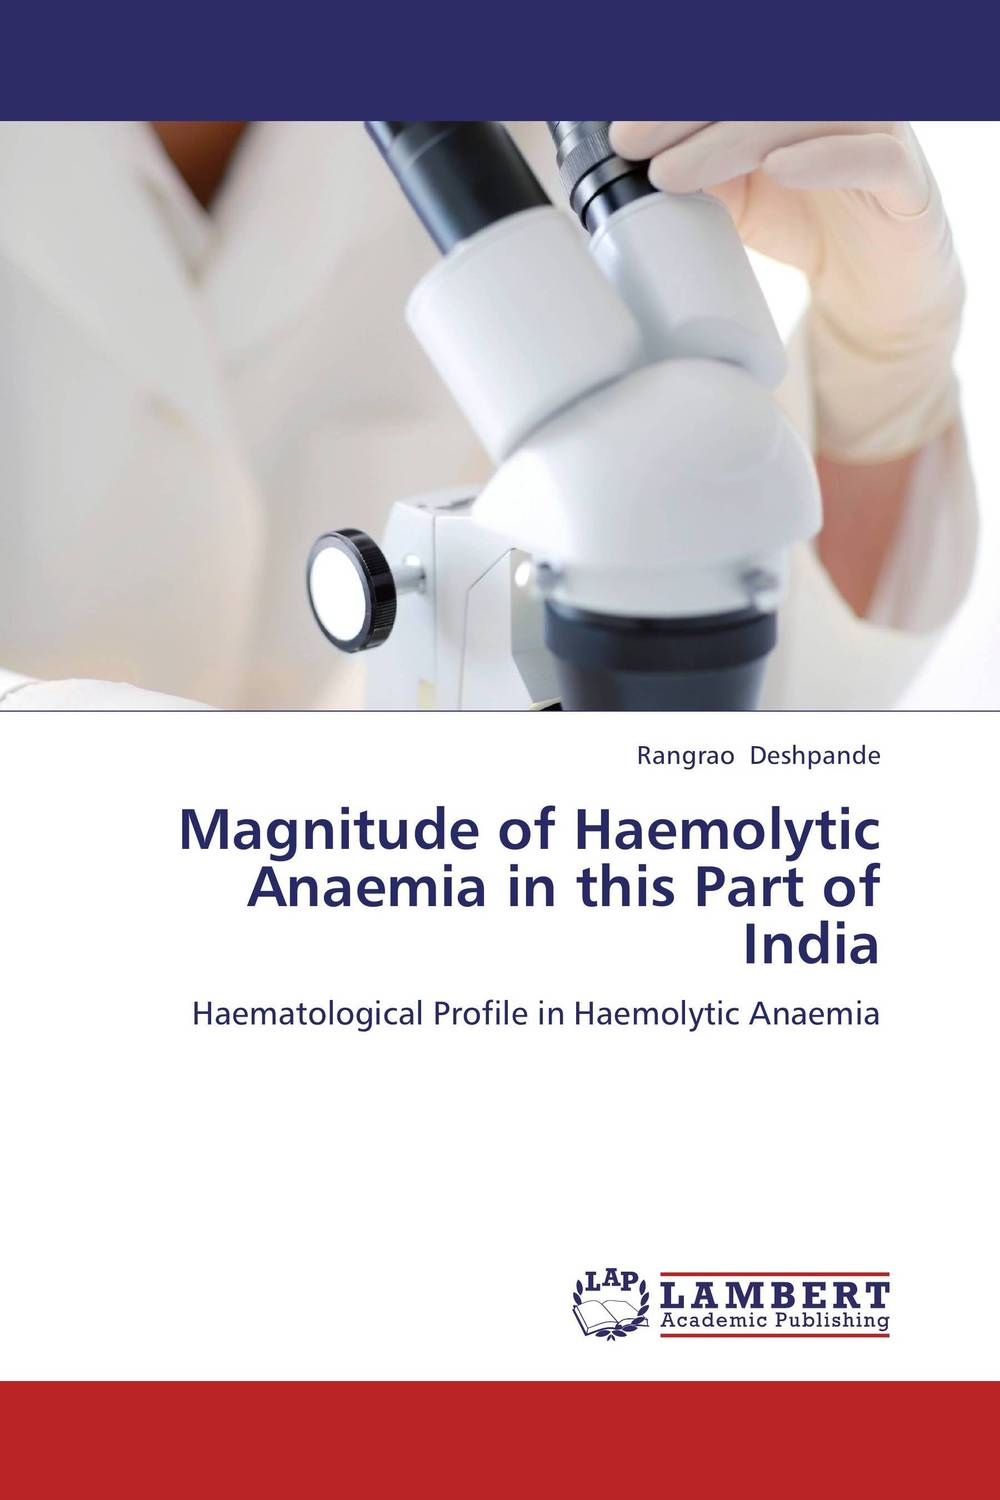 Magnitude of Haemolytic Anaemia in this Part of India retinopathy among undiagnosed patients of pakistan